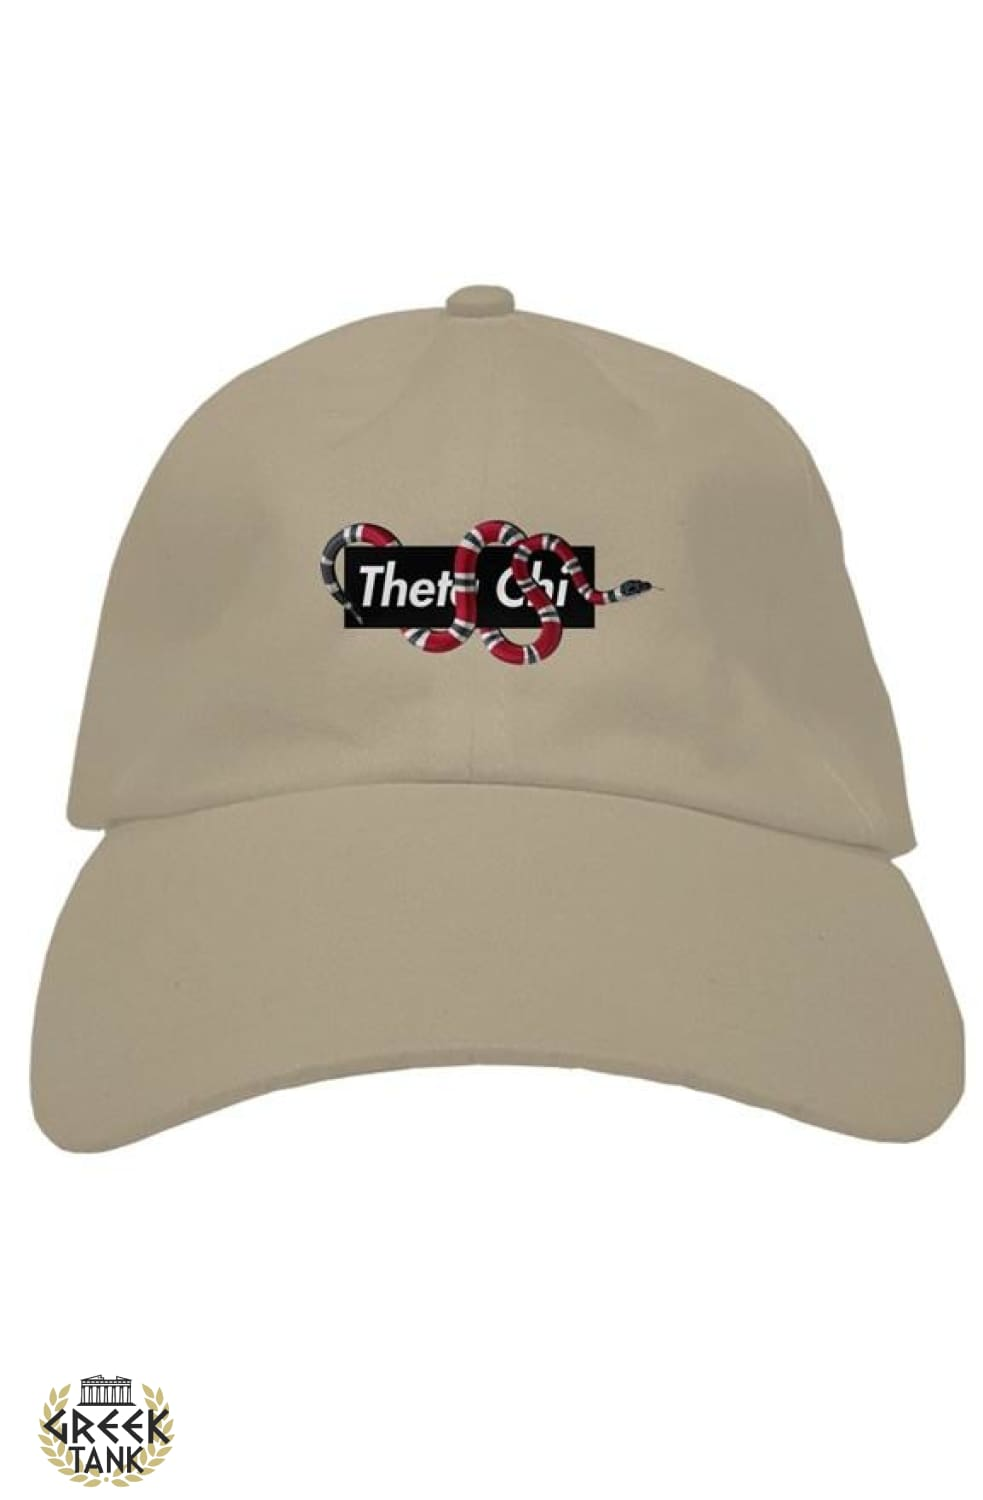 Thetachi Hat Snake Hats